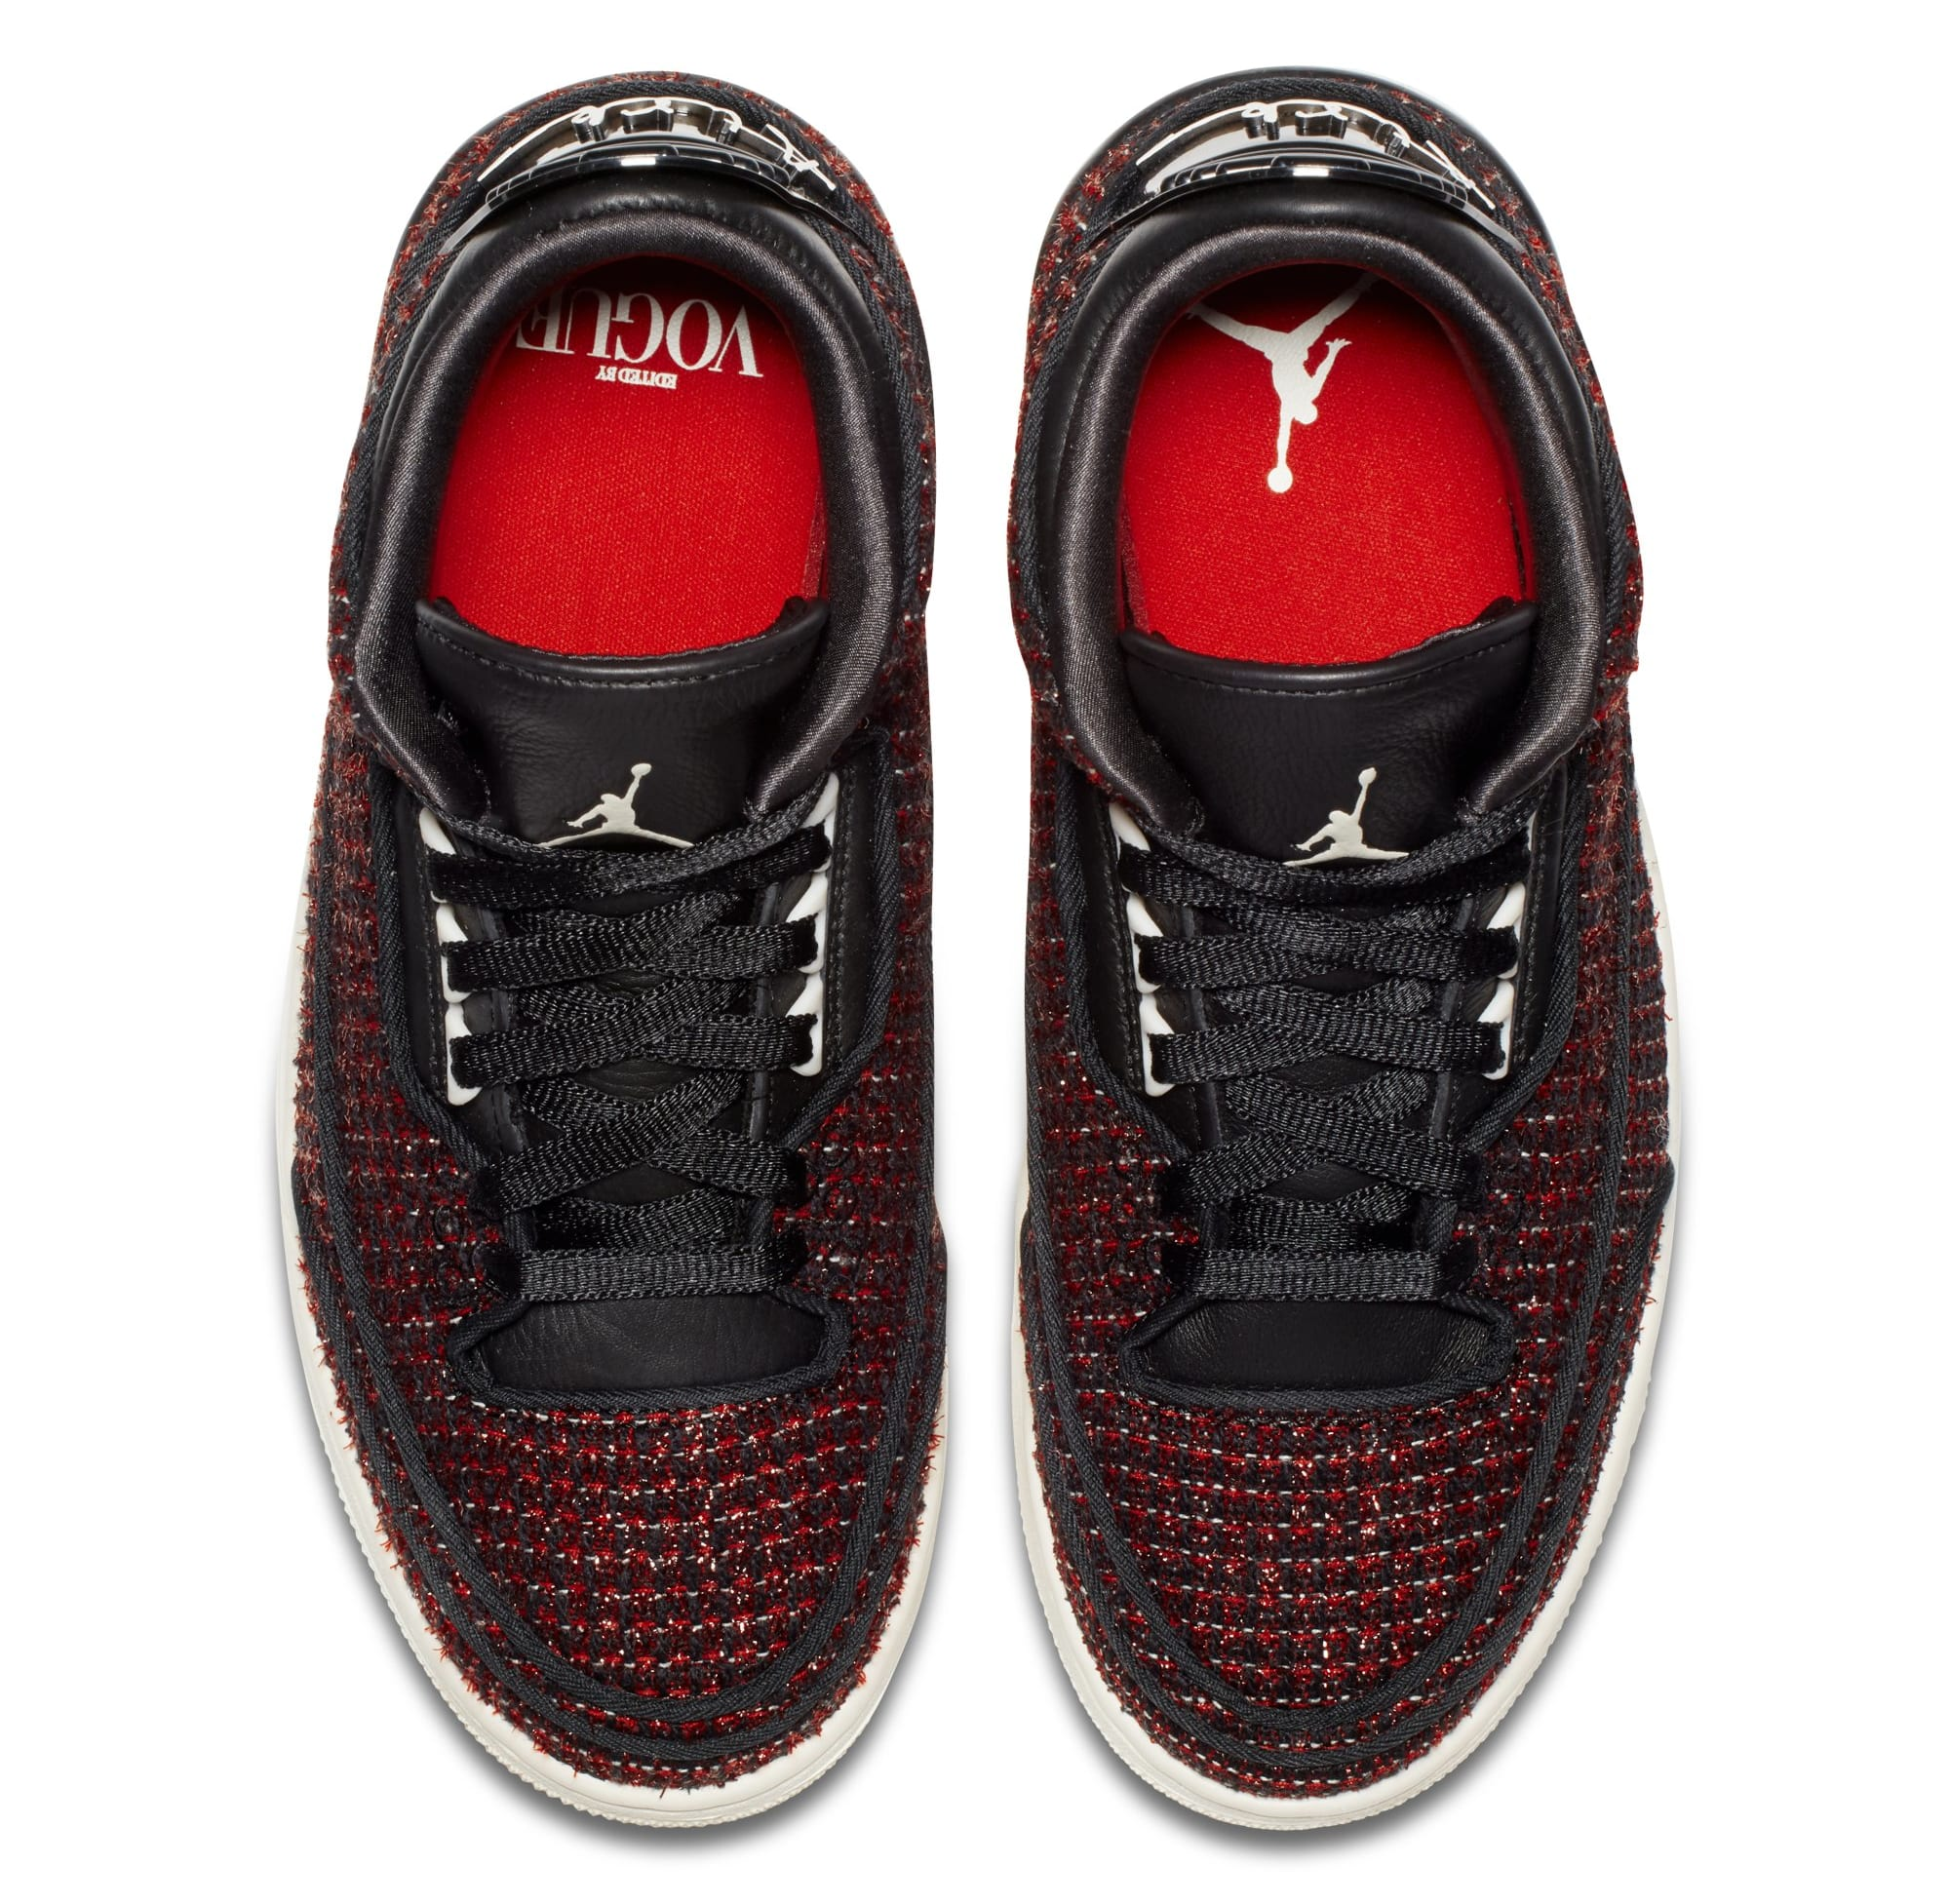 5af20f8223e Image via Nike Air Jordan 3 SE AWOK 'University Red/Sail/Black' BQ3195-601